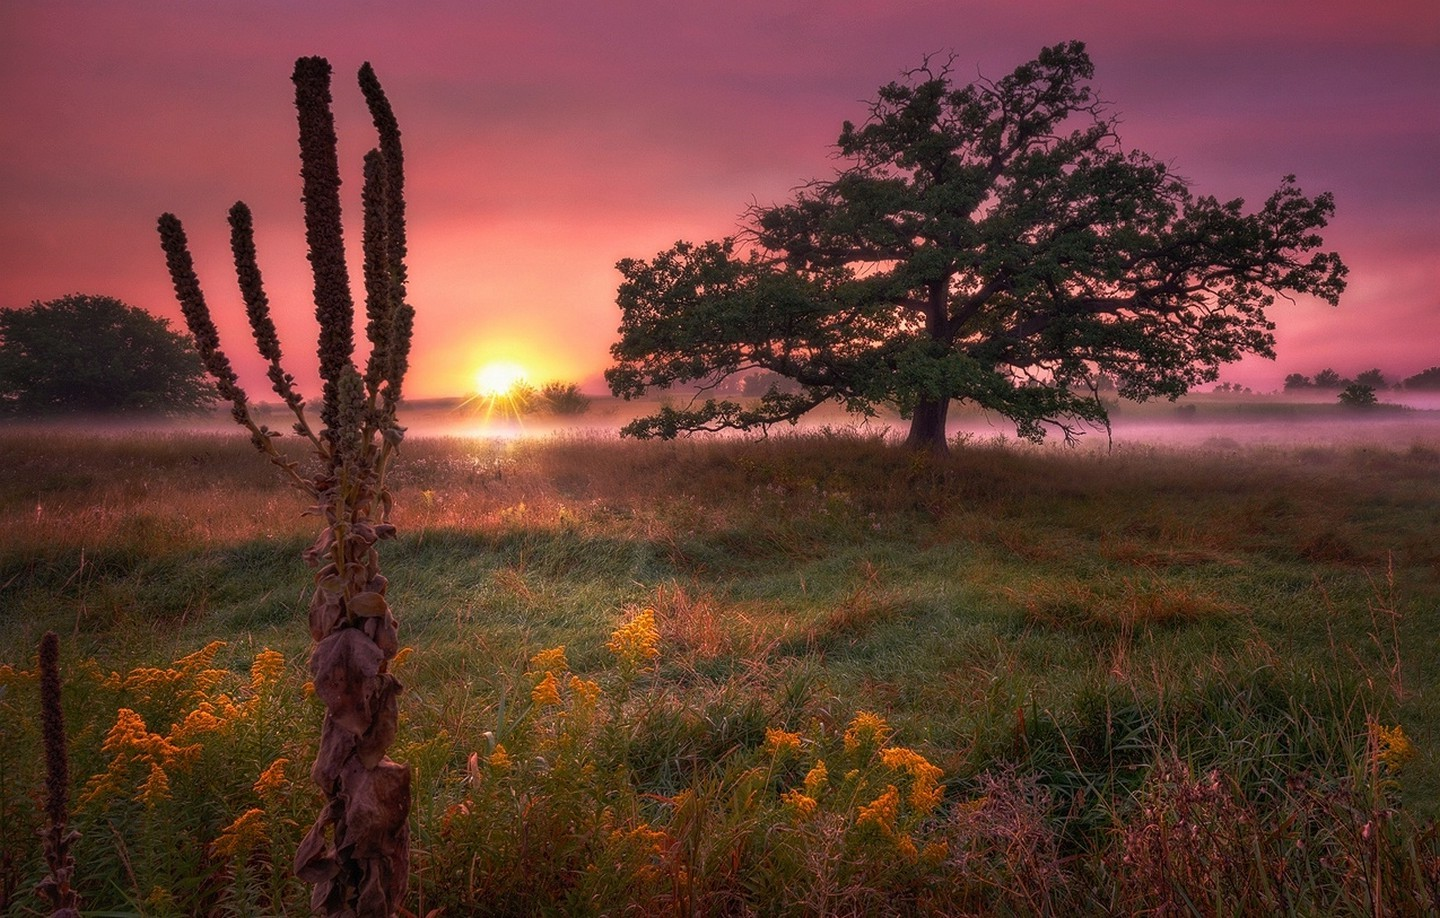 Pink Animal Wallpaper Trees Field Sunrise Wildflowers Mist Grass Morning